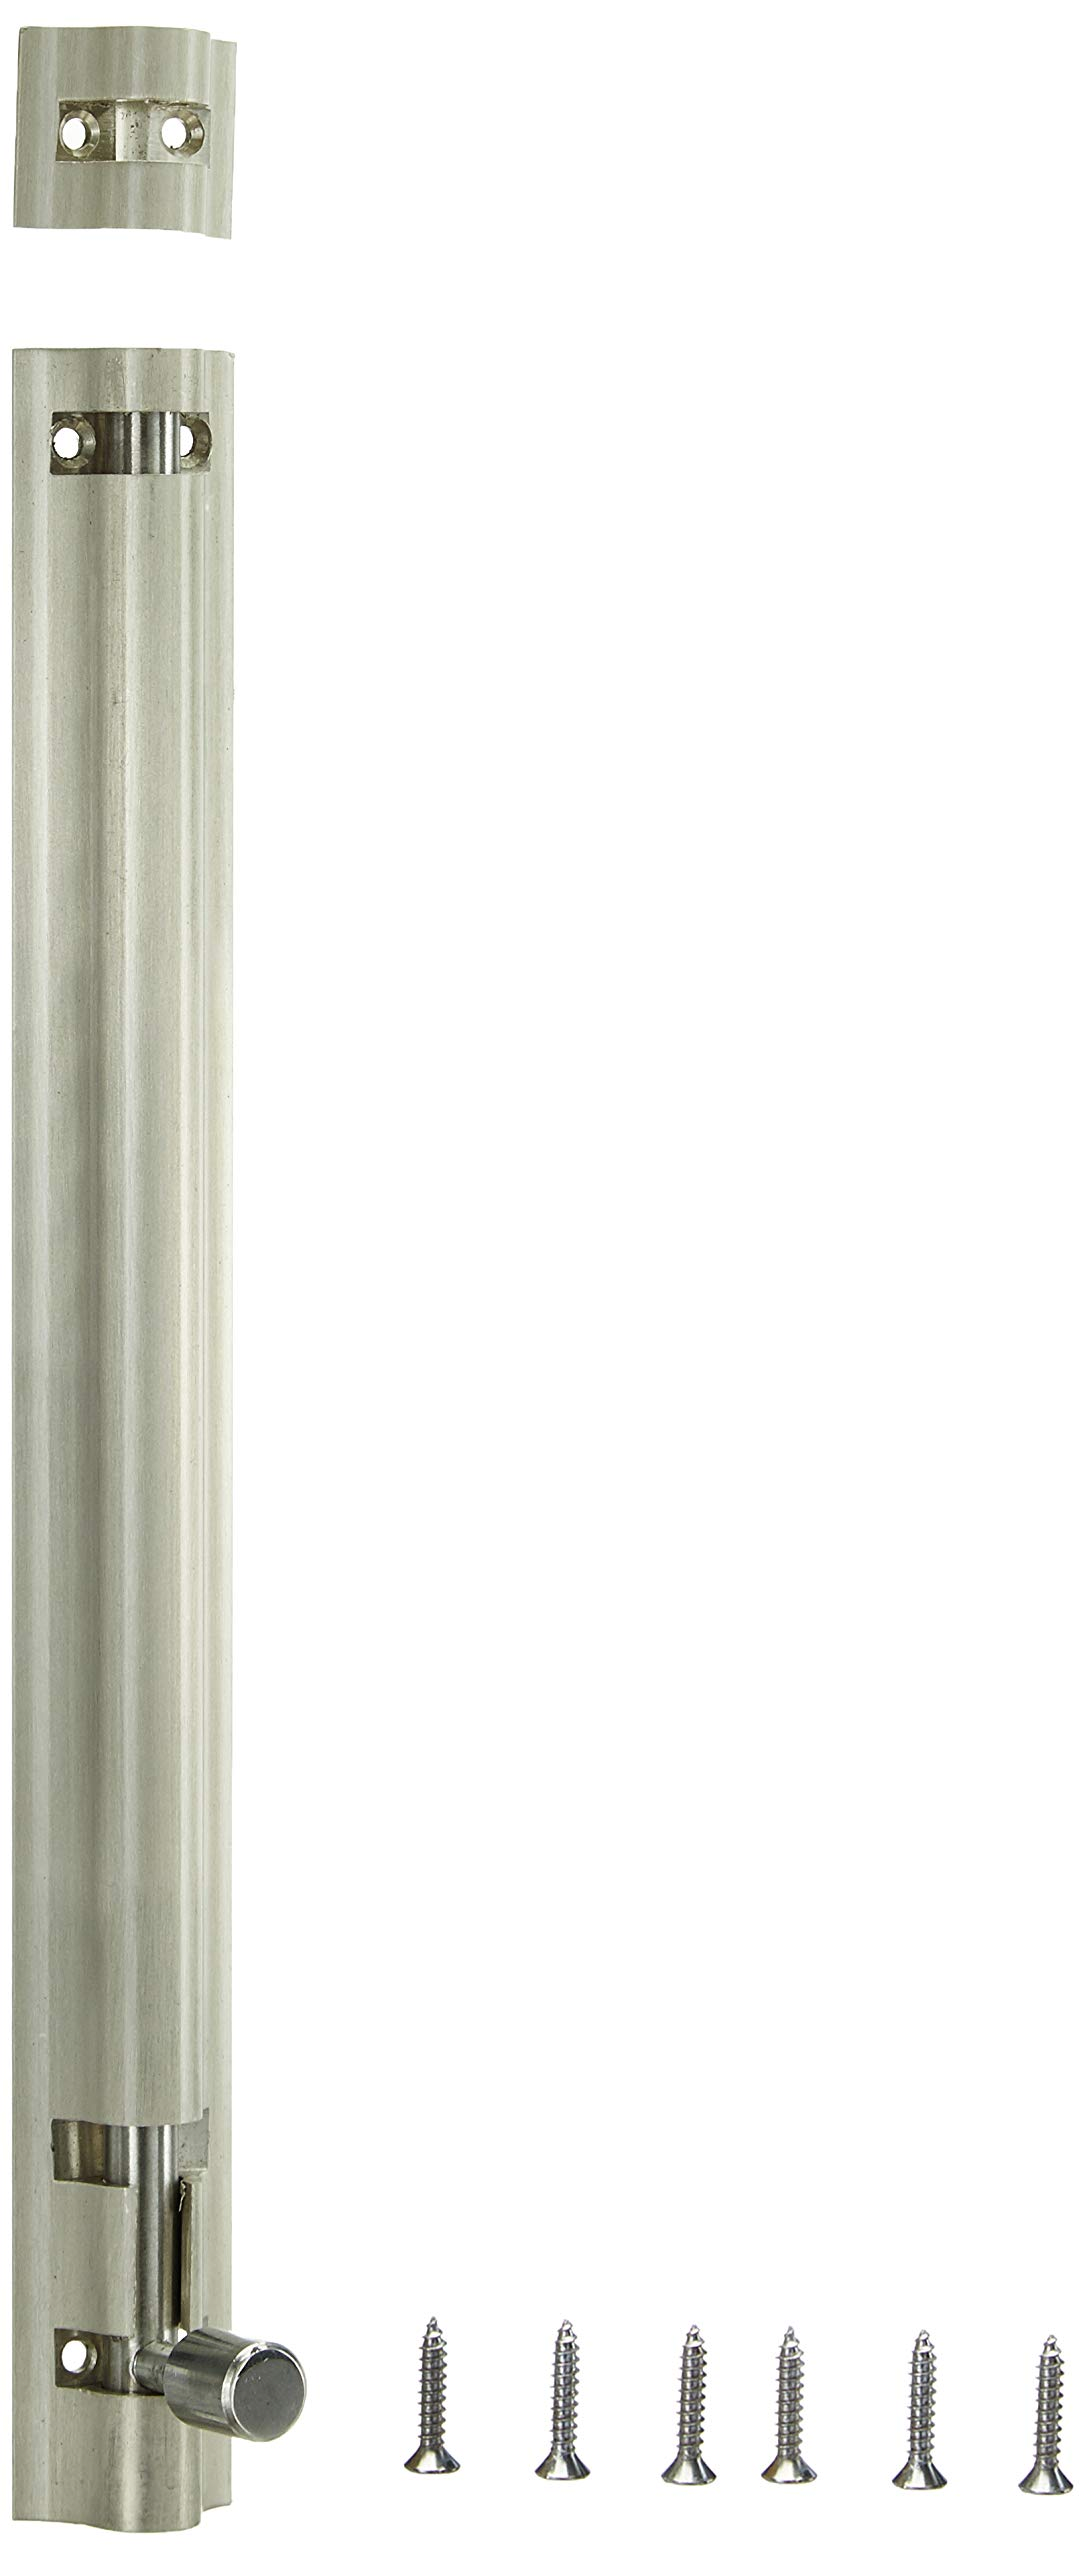 Aquieen TB653 Stainless Steel Tower Bolt Set Heavy (10 INCHES, SS Matte) (B07J5WR7Z7) Amazon Price History, Amazon Price Tracker